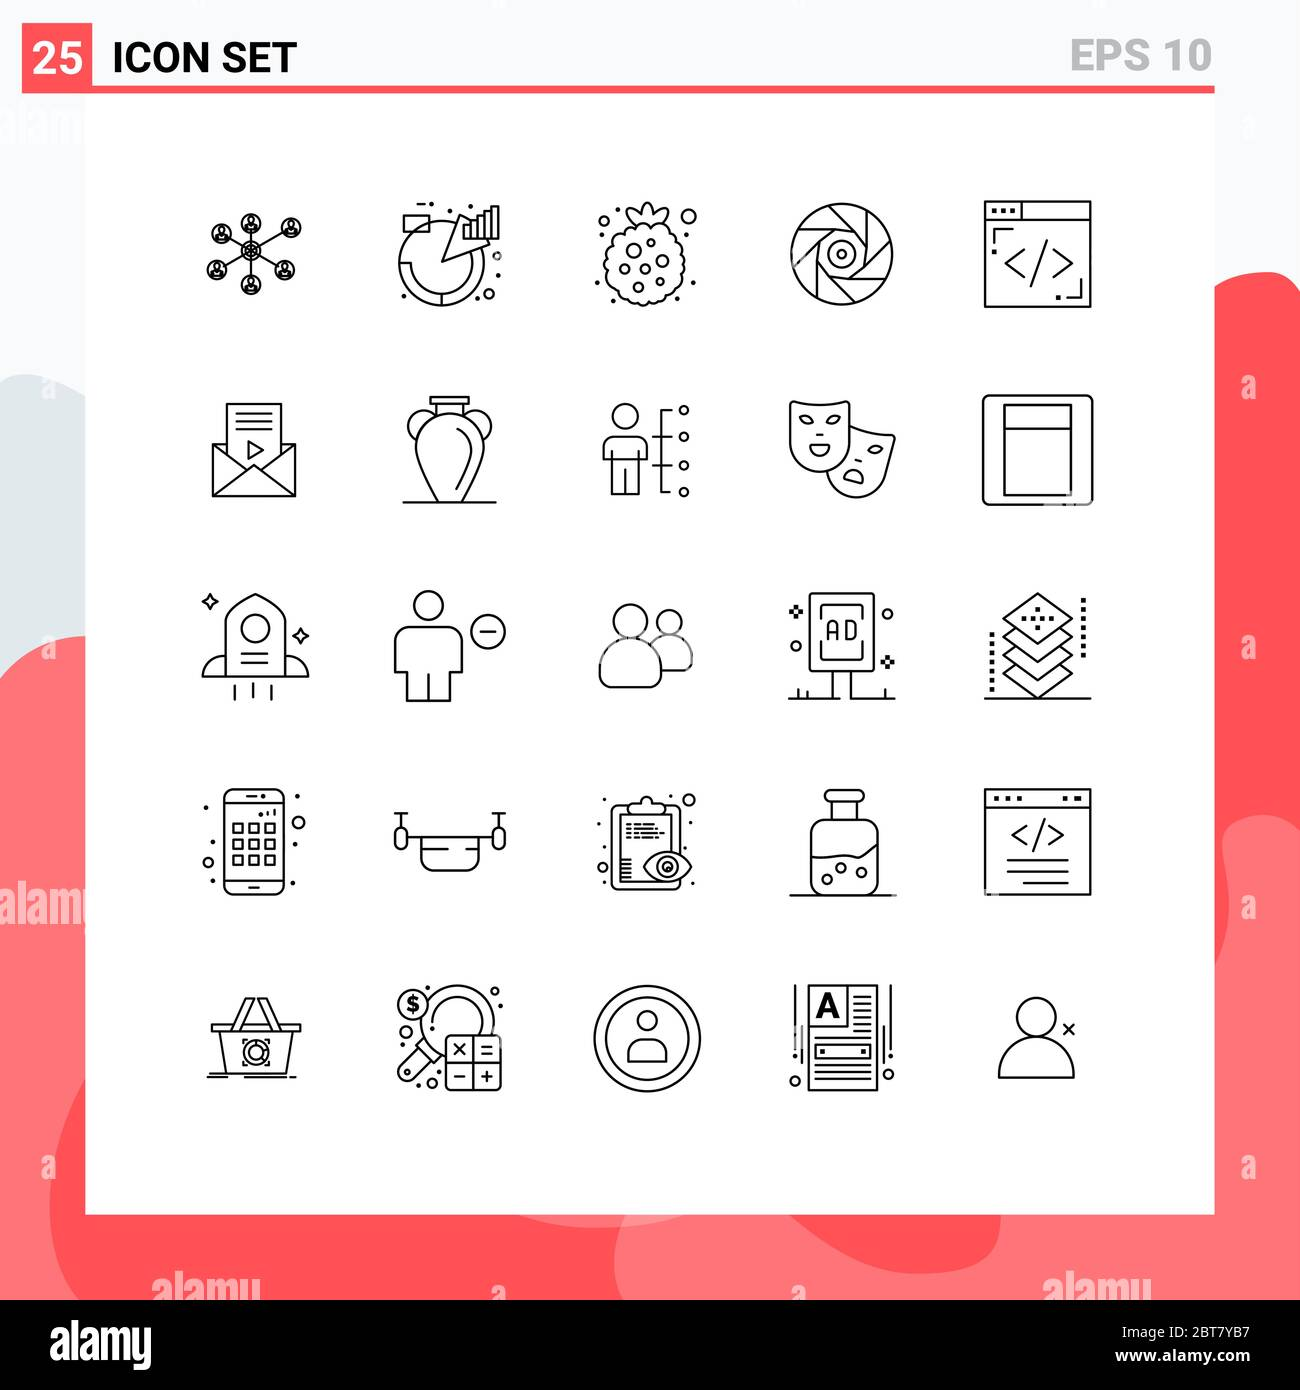 25 Thematic Vector Lines and Editable Symbols of coding, movie, product, entertainment, raspberry Editable Vector Design Elements Stock Vector